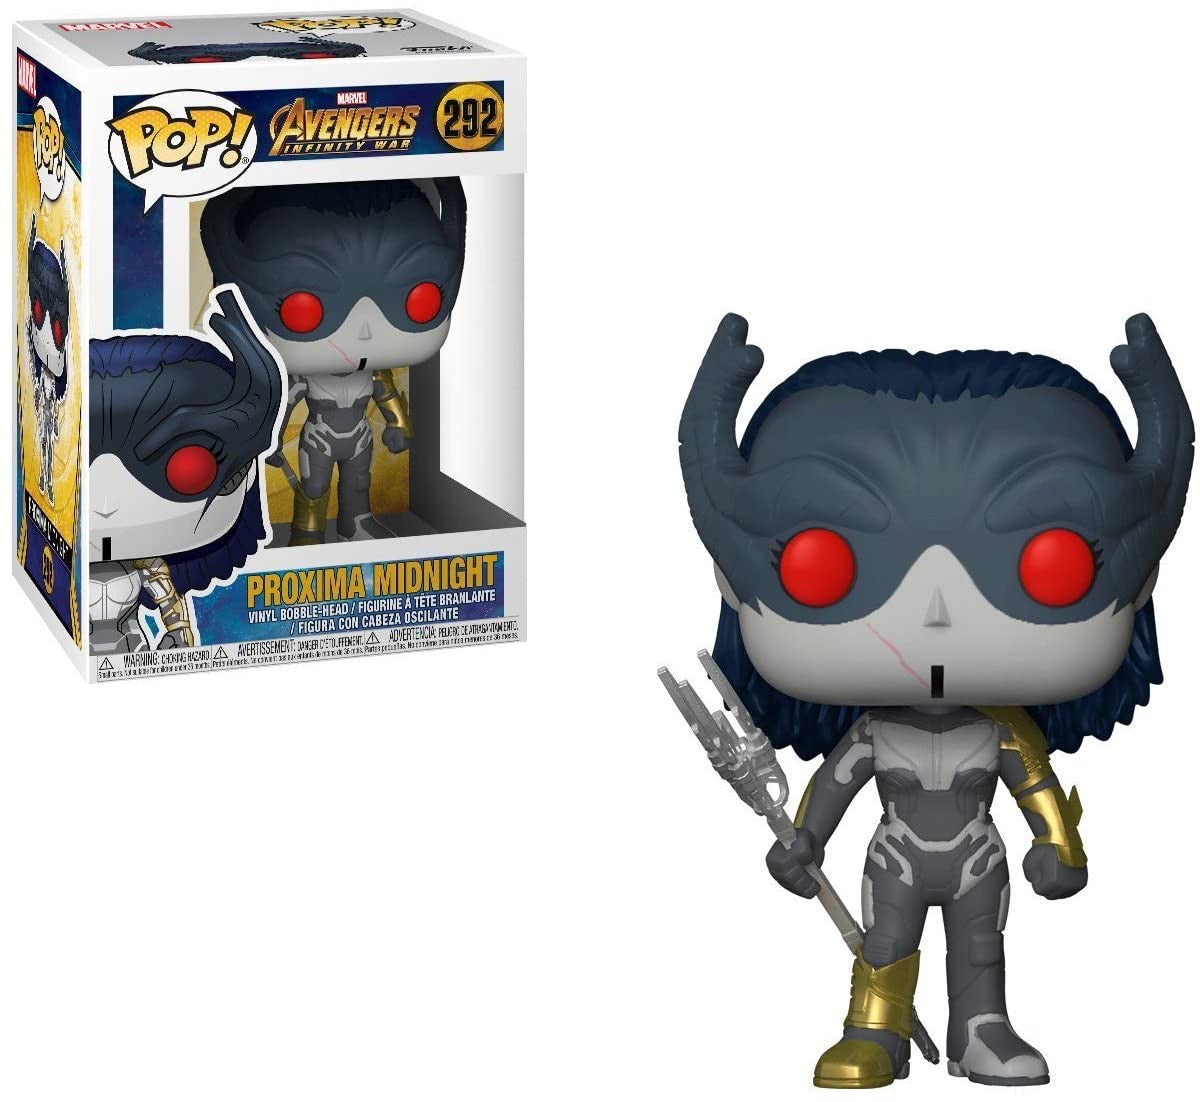 Avengers: Endgame POP! Vinyl Proxima Midnight